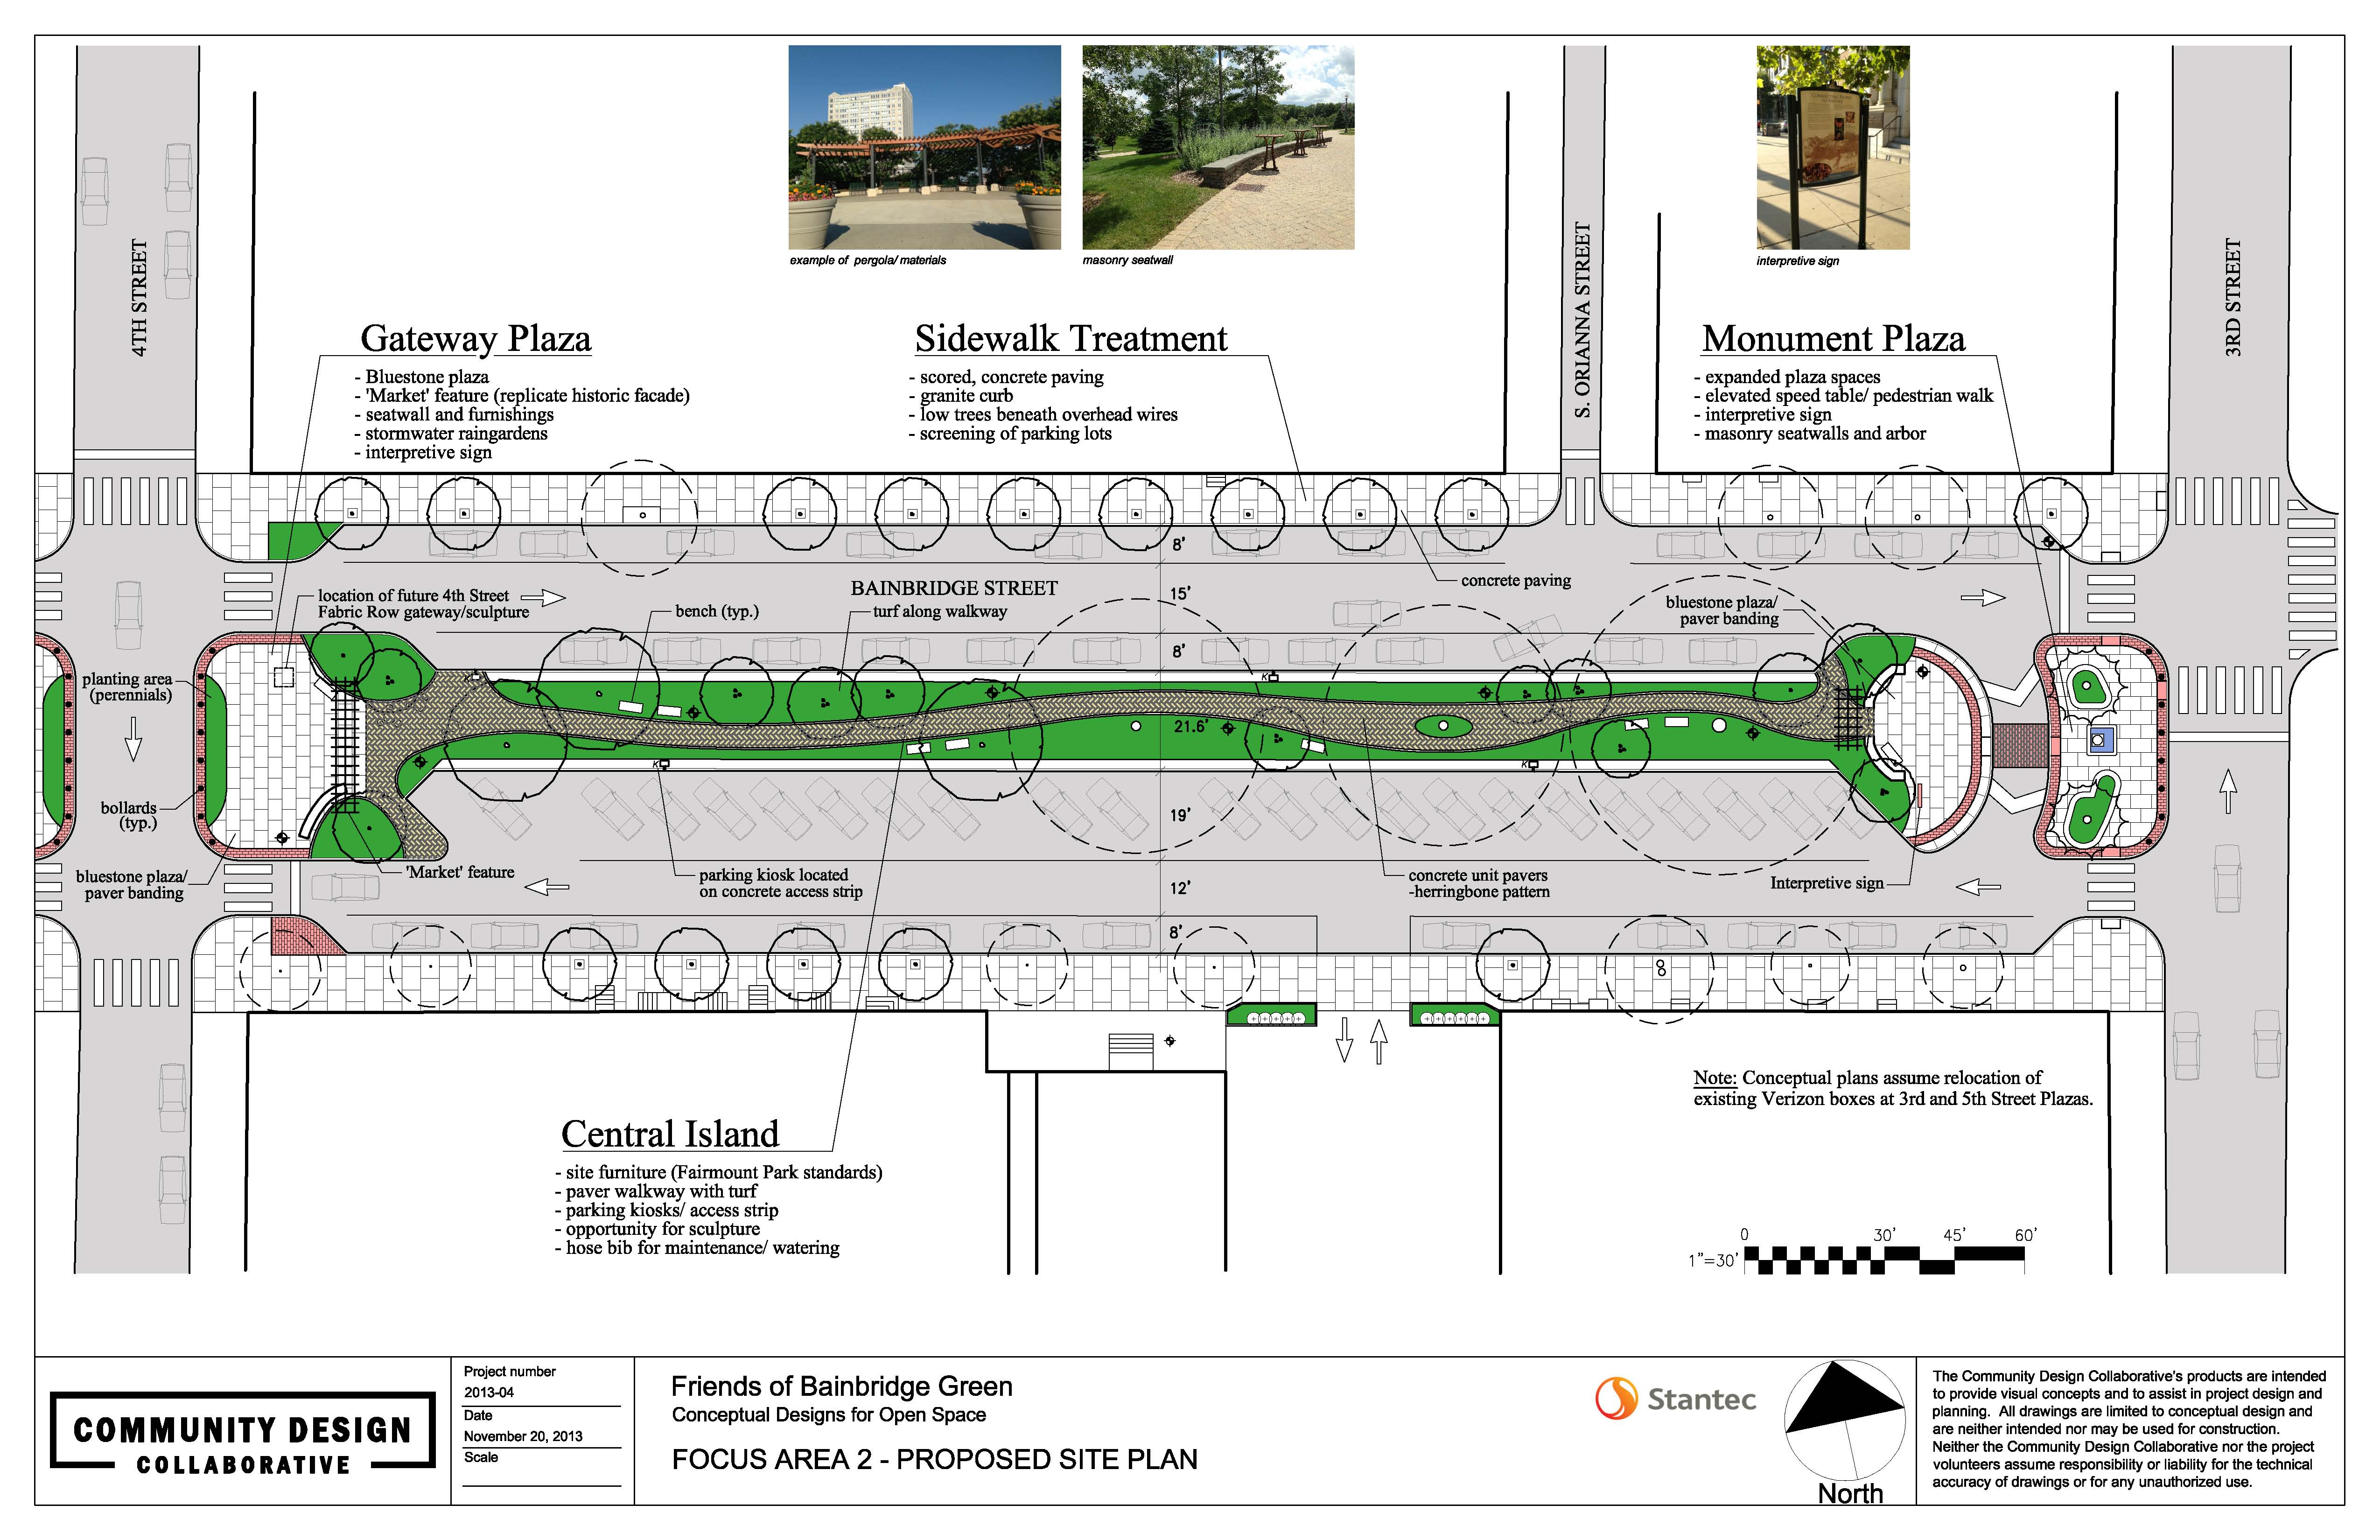 Bainbridge Green concept from 4th to 3rd streets | Community Design Collaborative